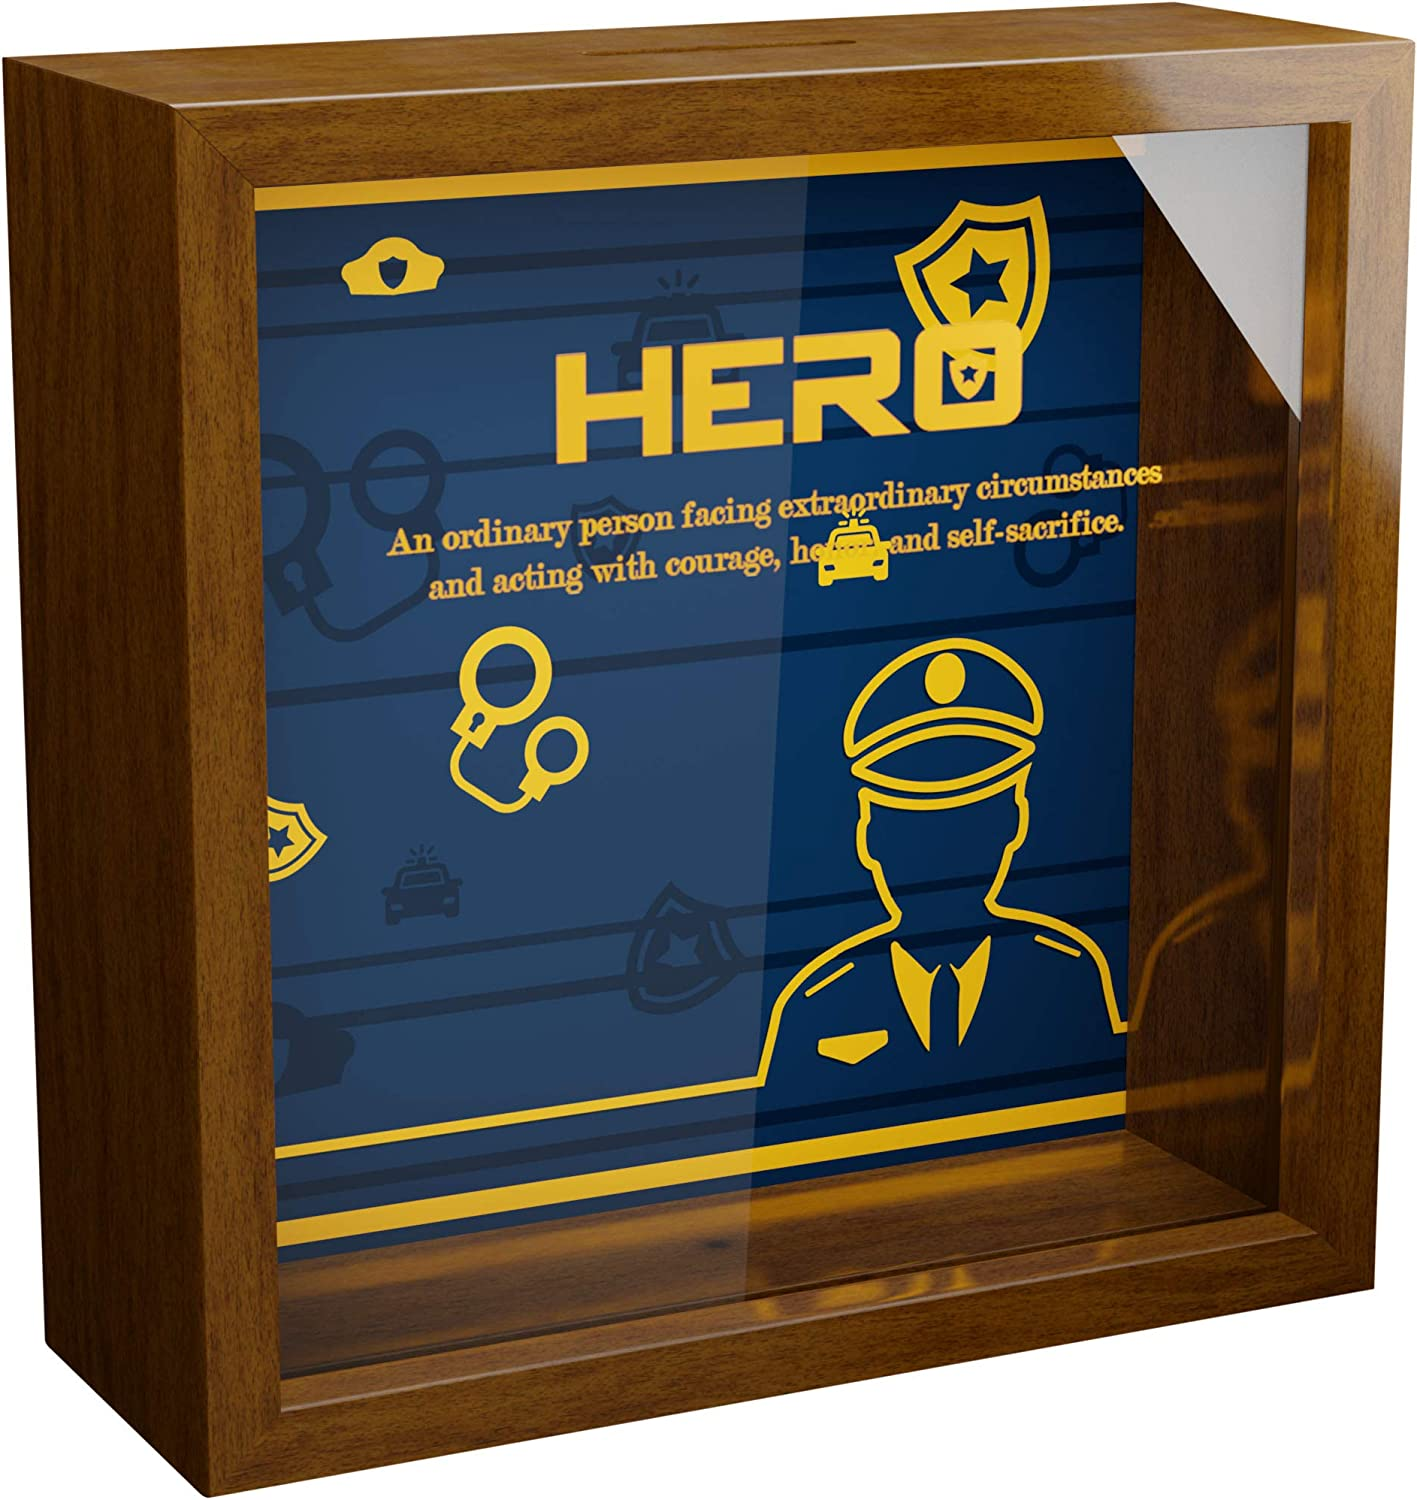 6x6x2 Memorabilia Shadow Box with Glass Front for Retired or Active Officers Police Officer Gifts Wall or Desk Wooden Keepsake Frame Decor Home and Office Decorations for Cops